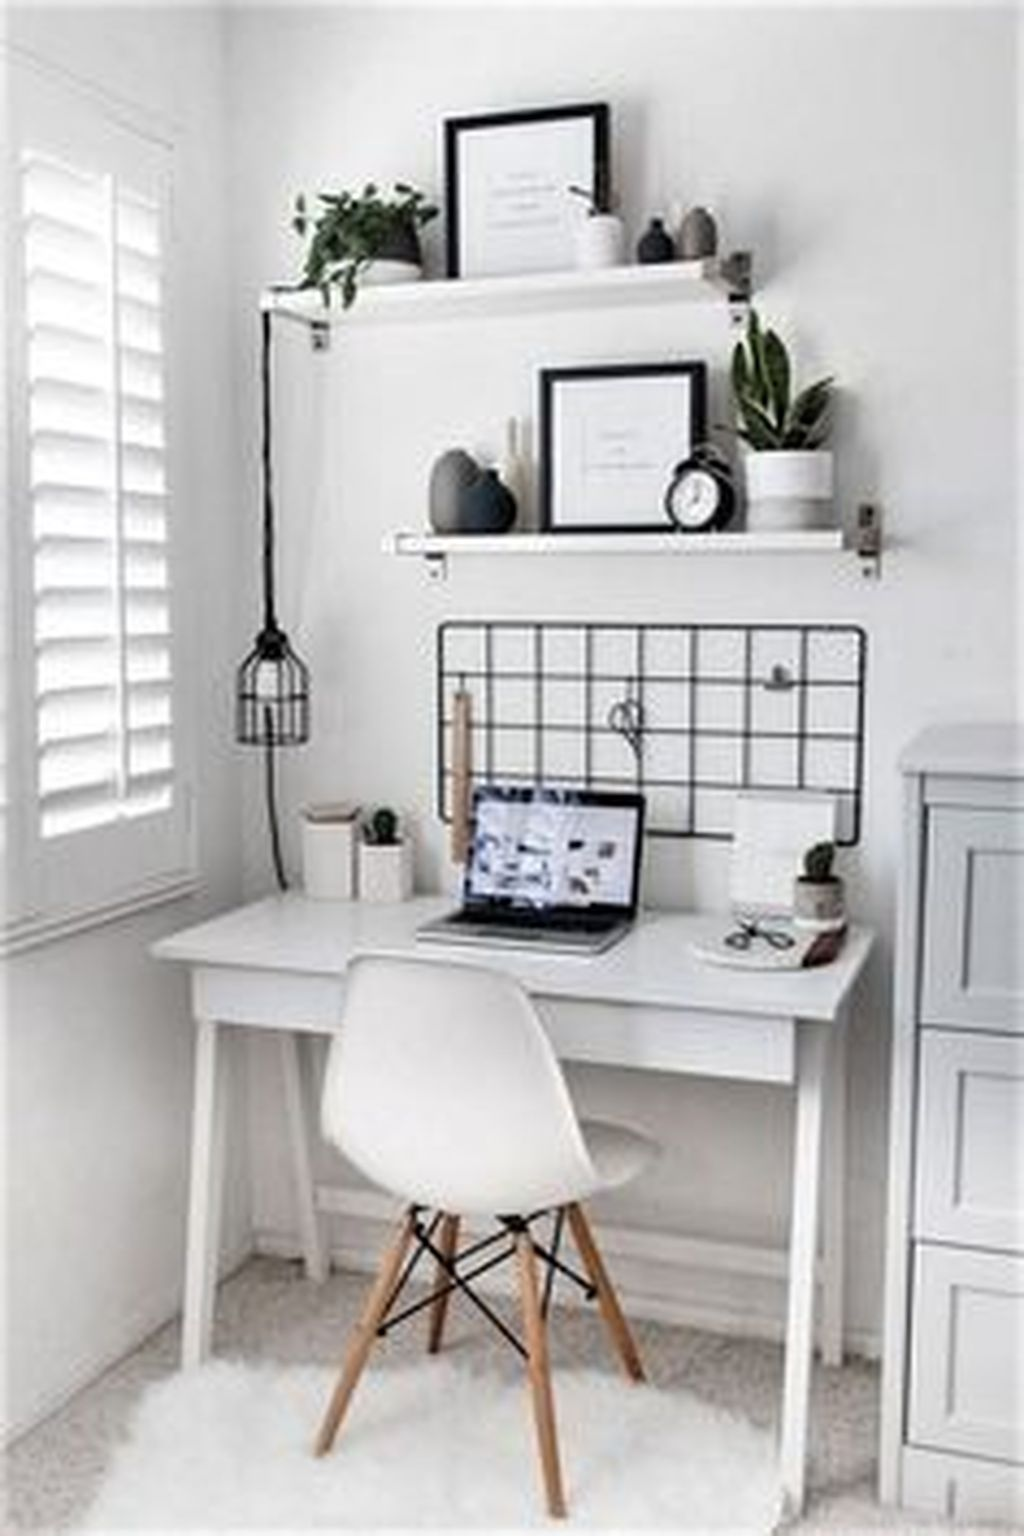 Inspiring Small Office Ideas For Small Space 16